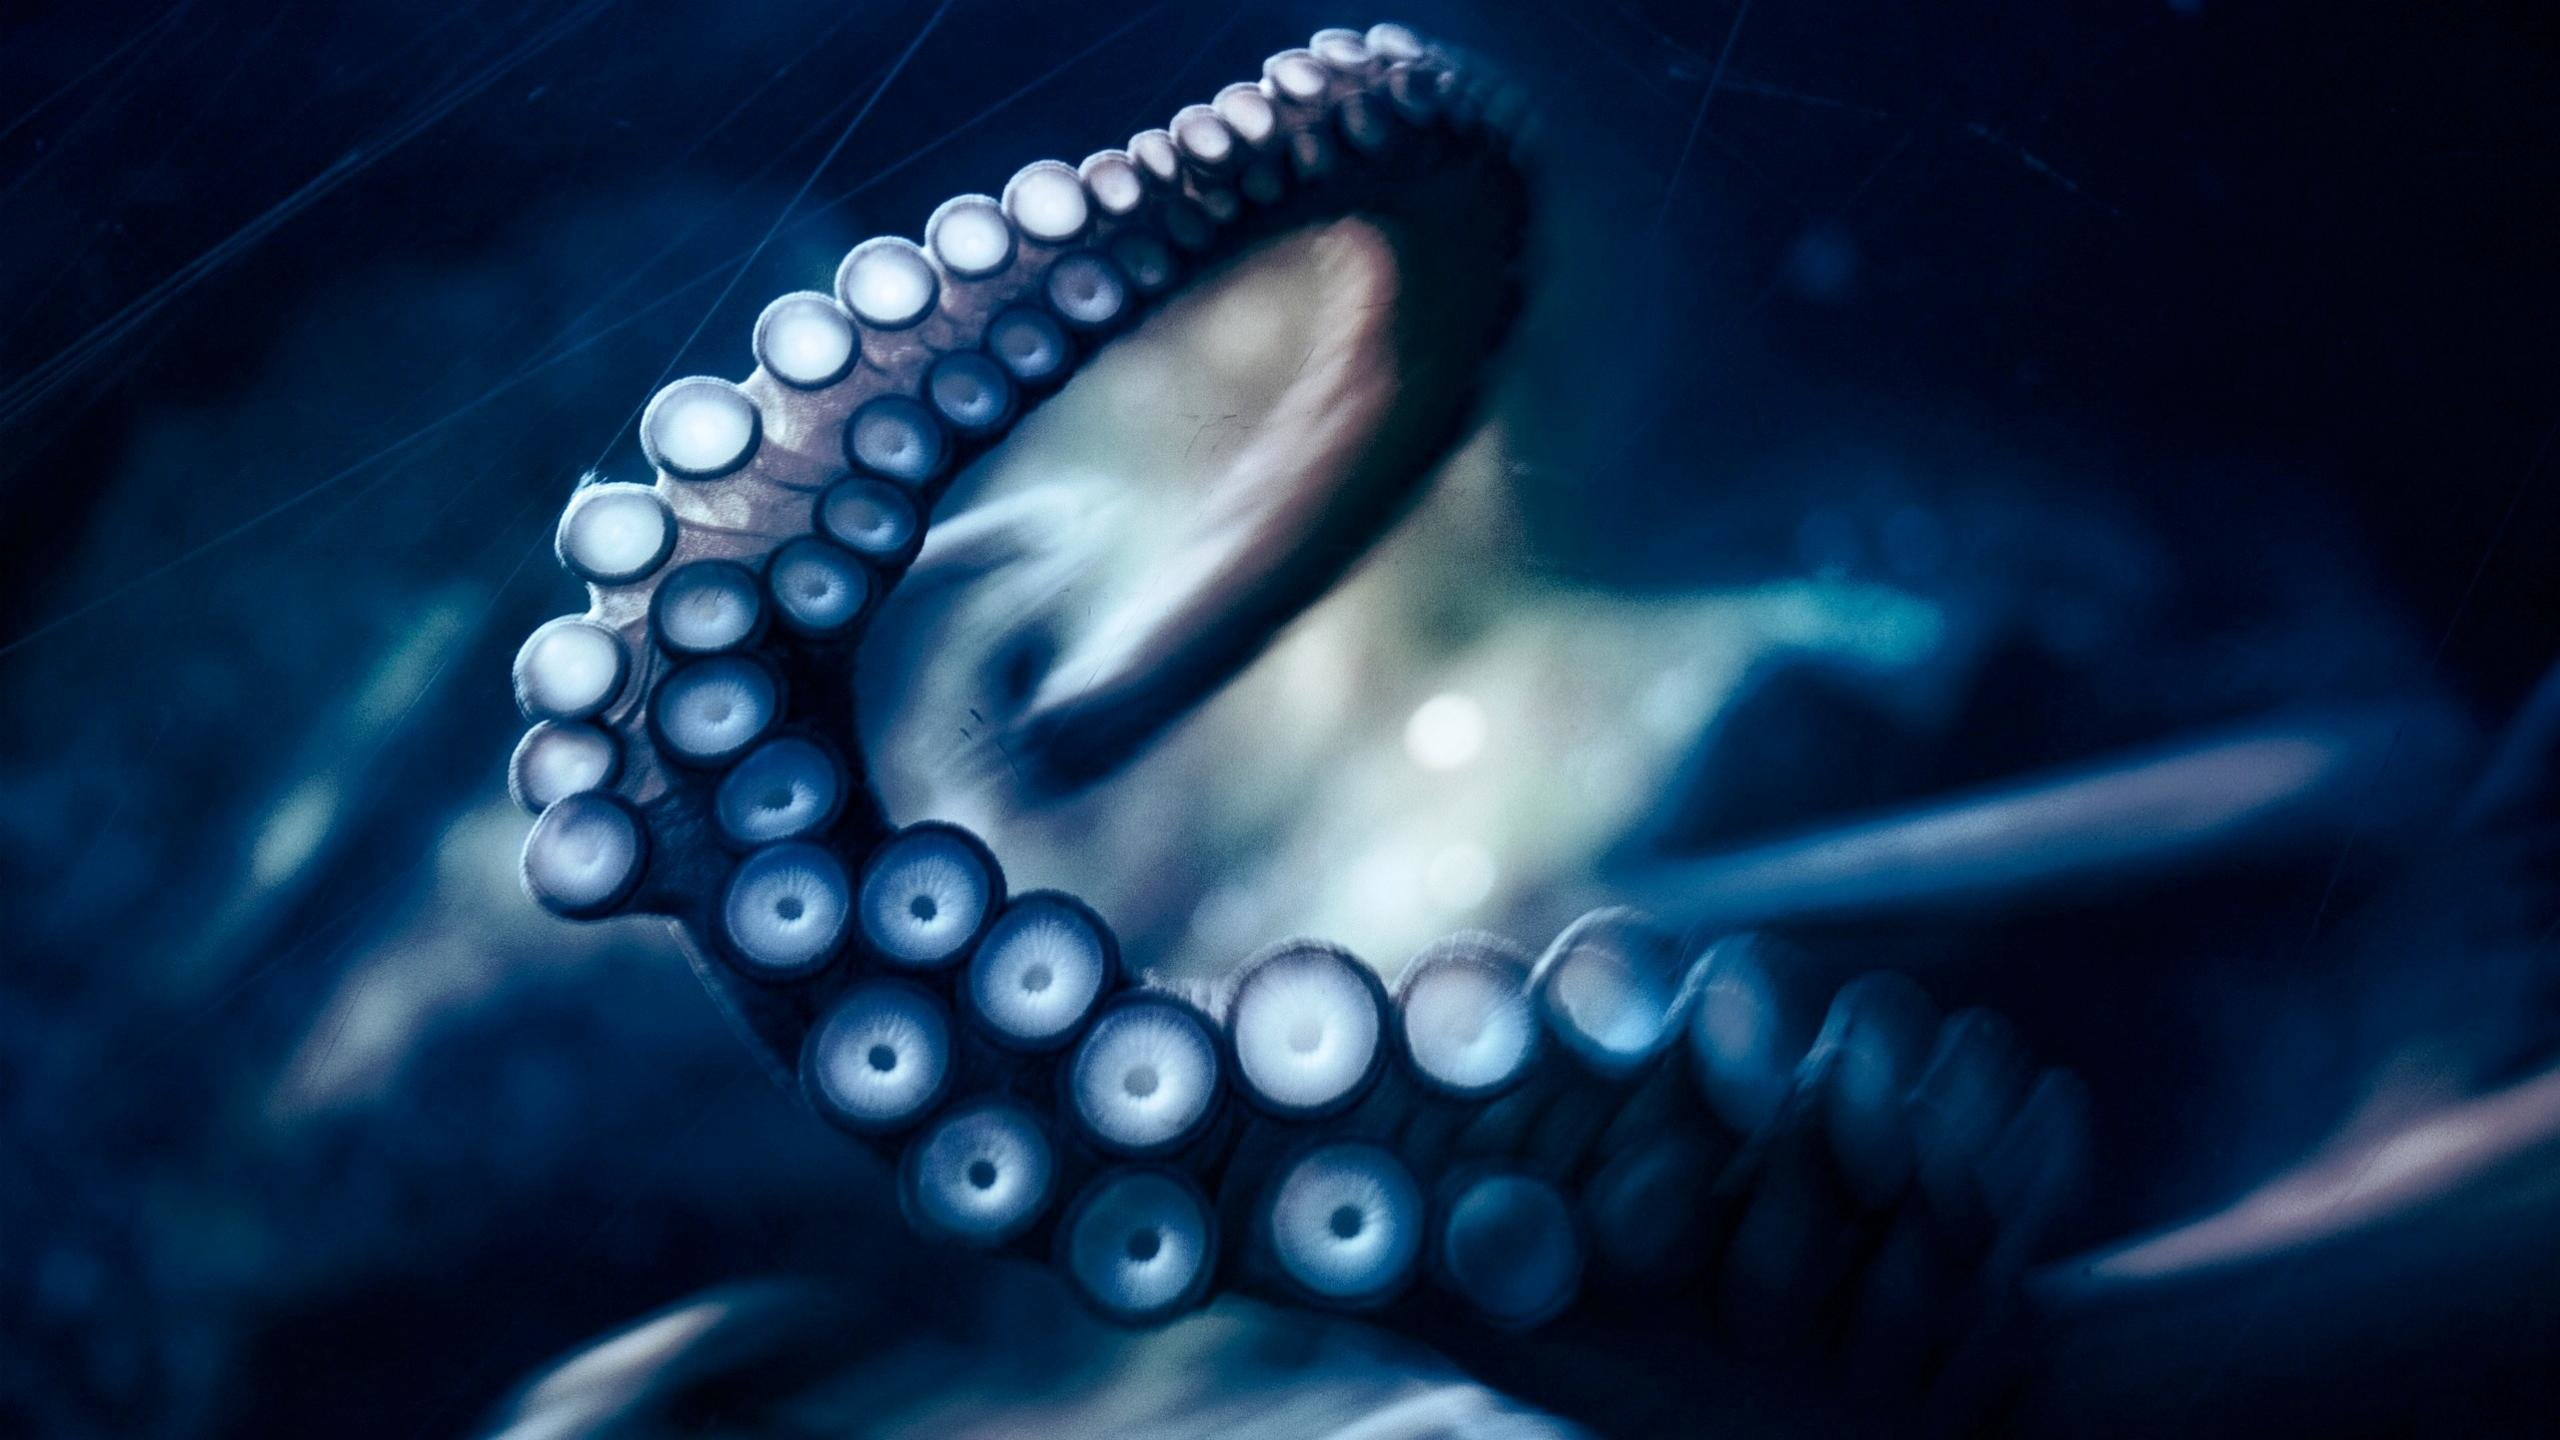 Free Octopus high quality wallpaper ID:350561 for hd 2560x1440 desktop